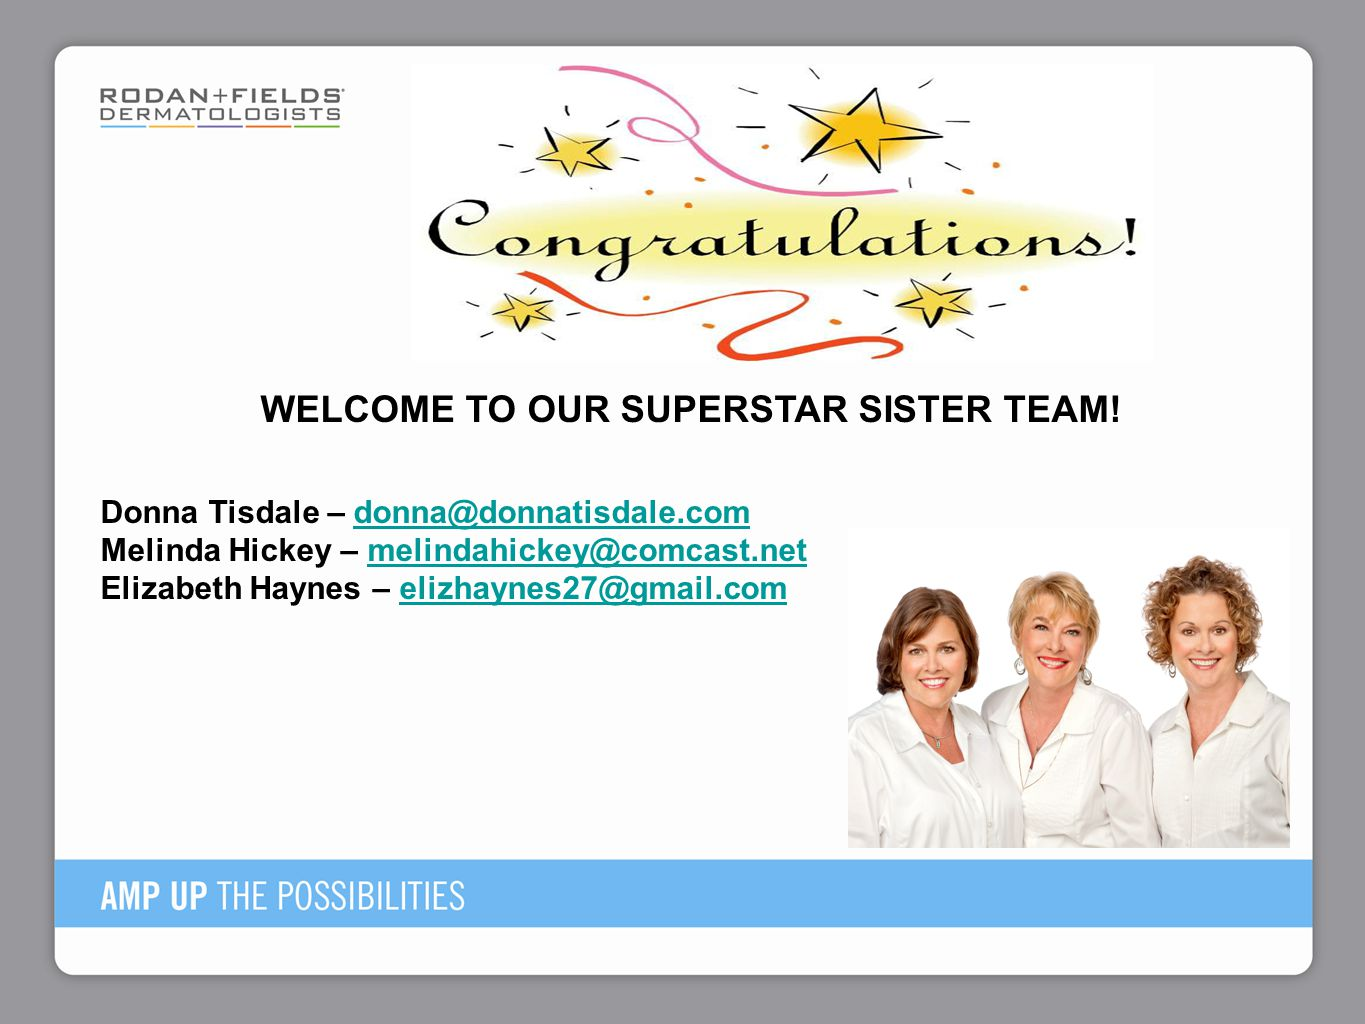 WELCOME TO OUR SUPERSTAR SISTER TEAM!